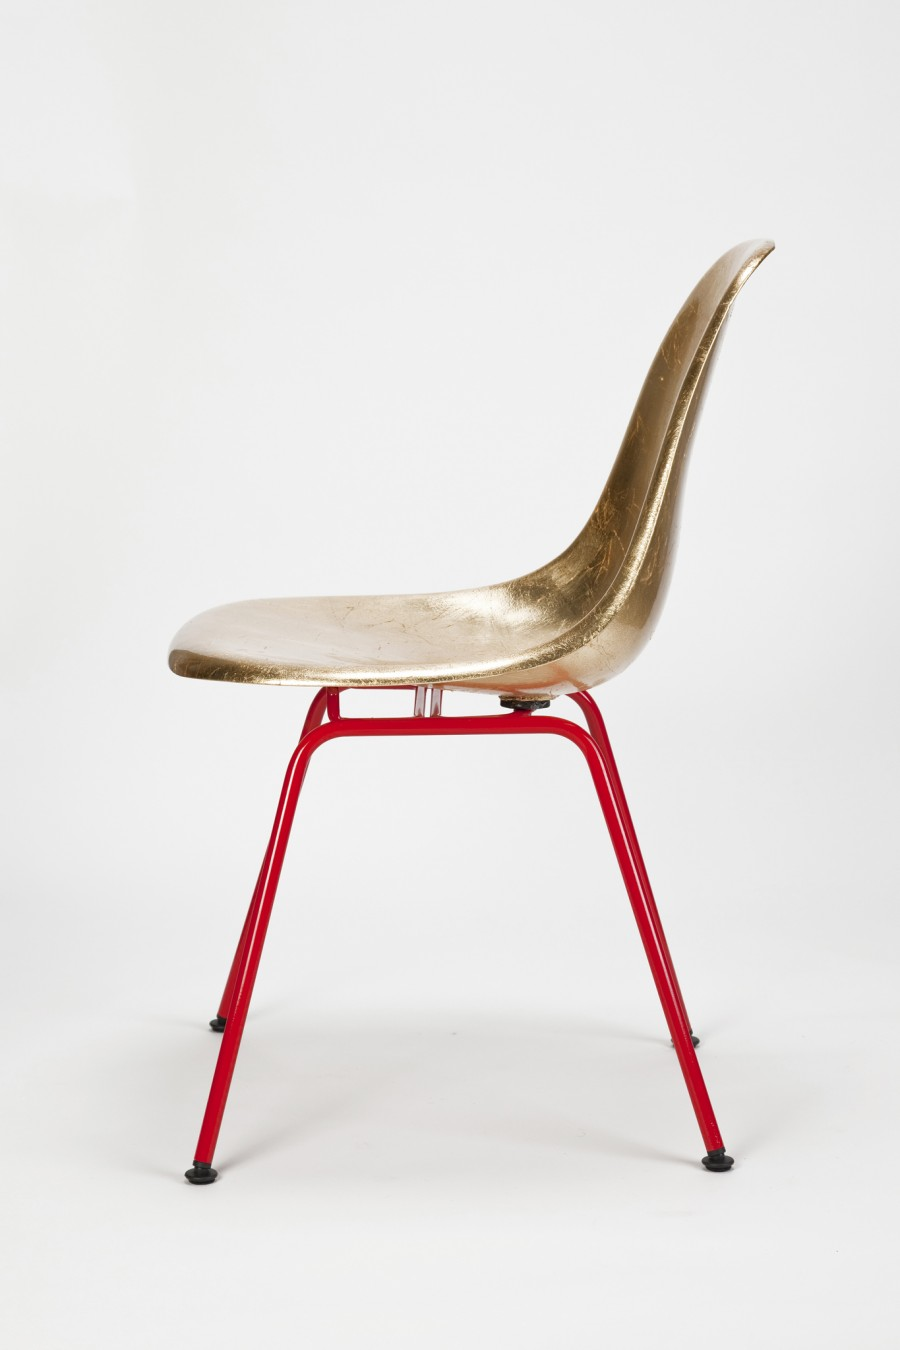 Eames and Jacobsen Go Goldy Gold by Reha Okay - on flodeau.com 08